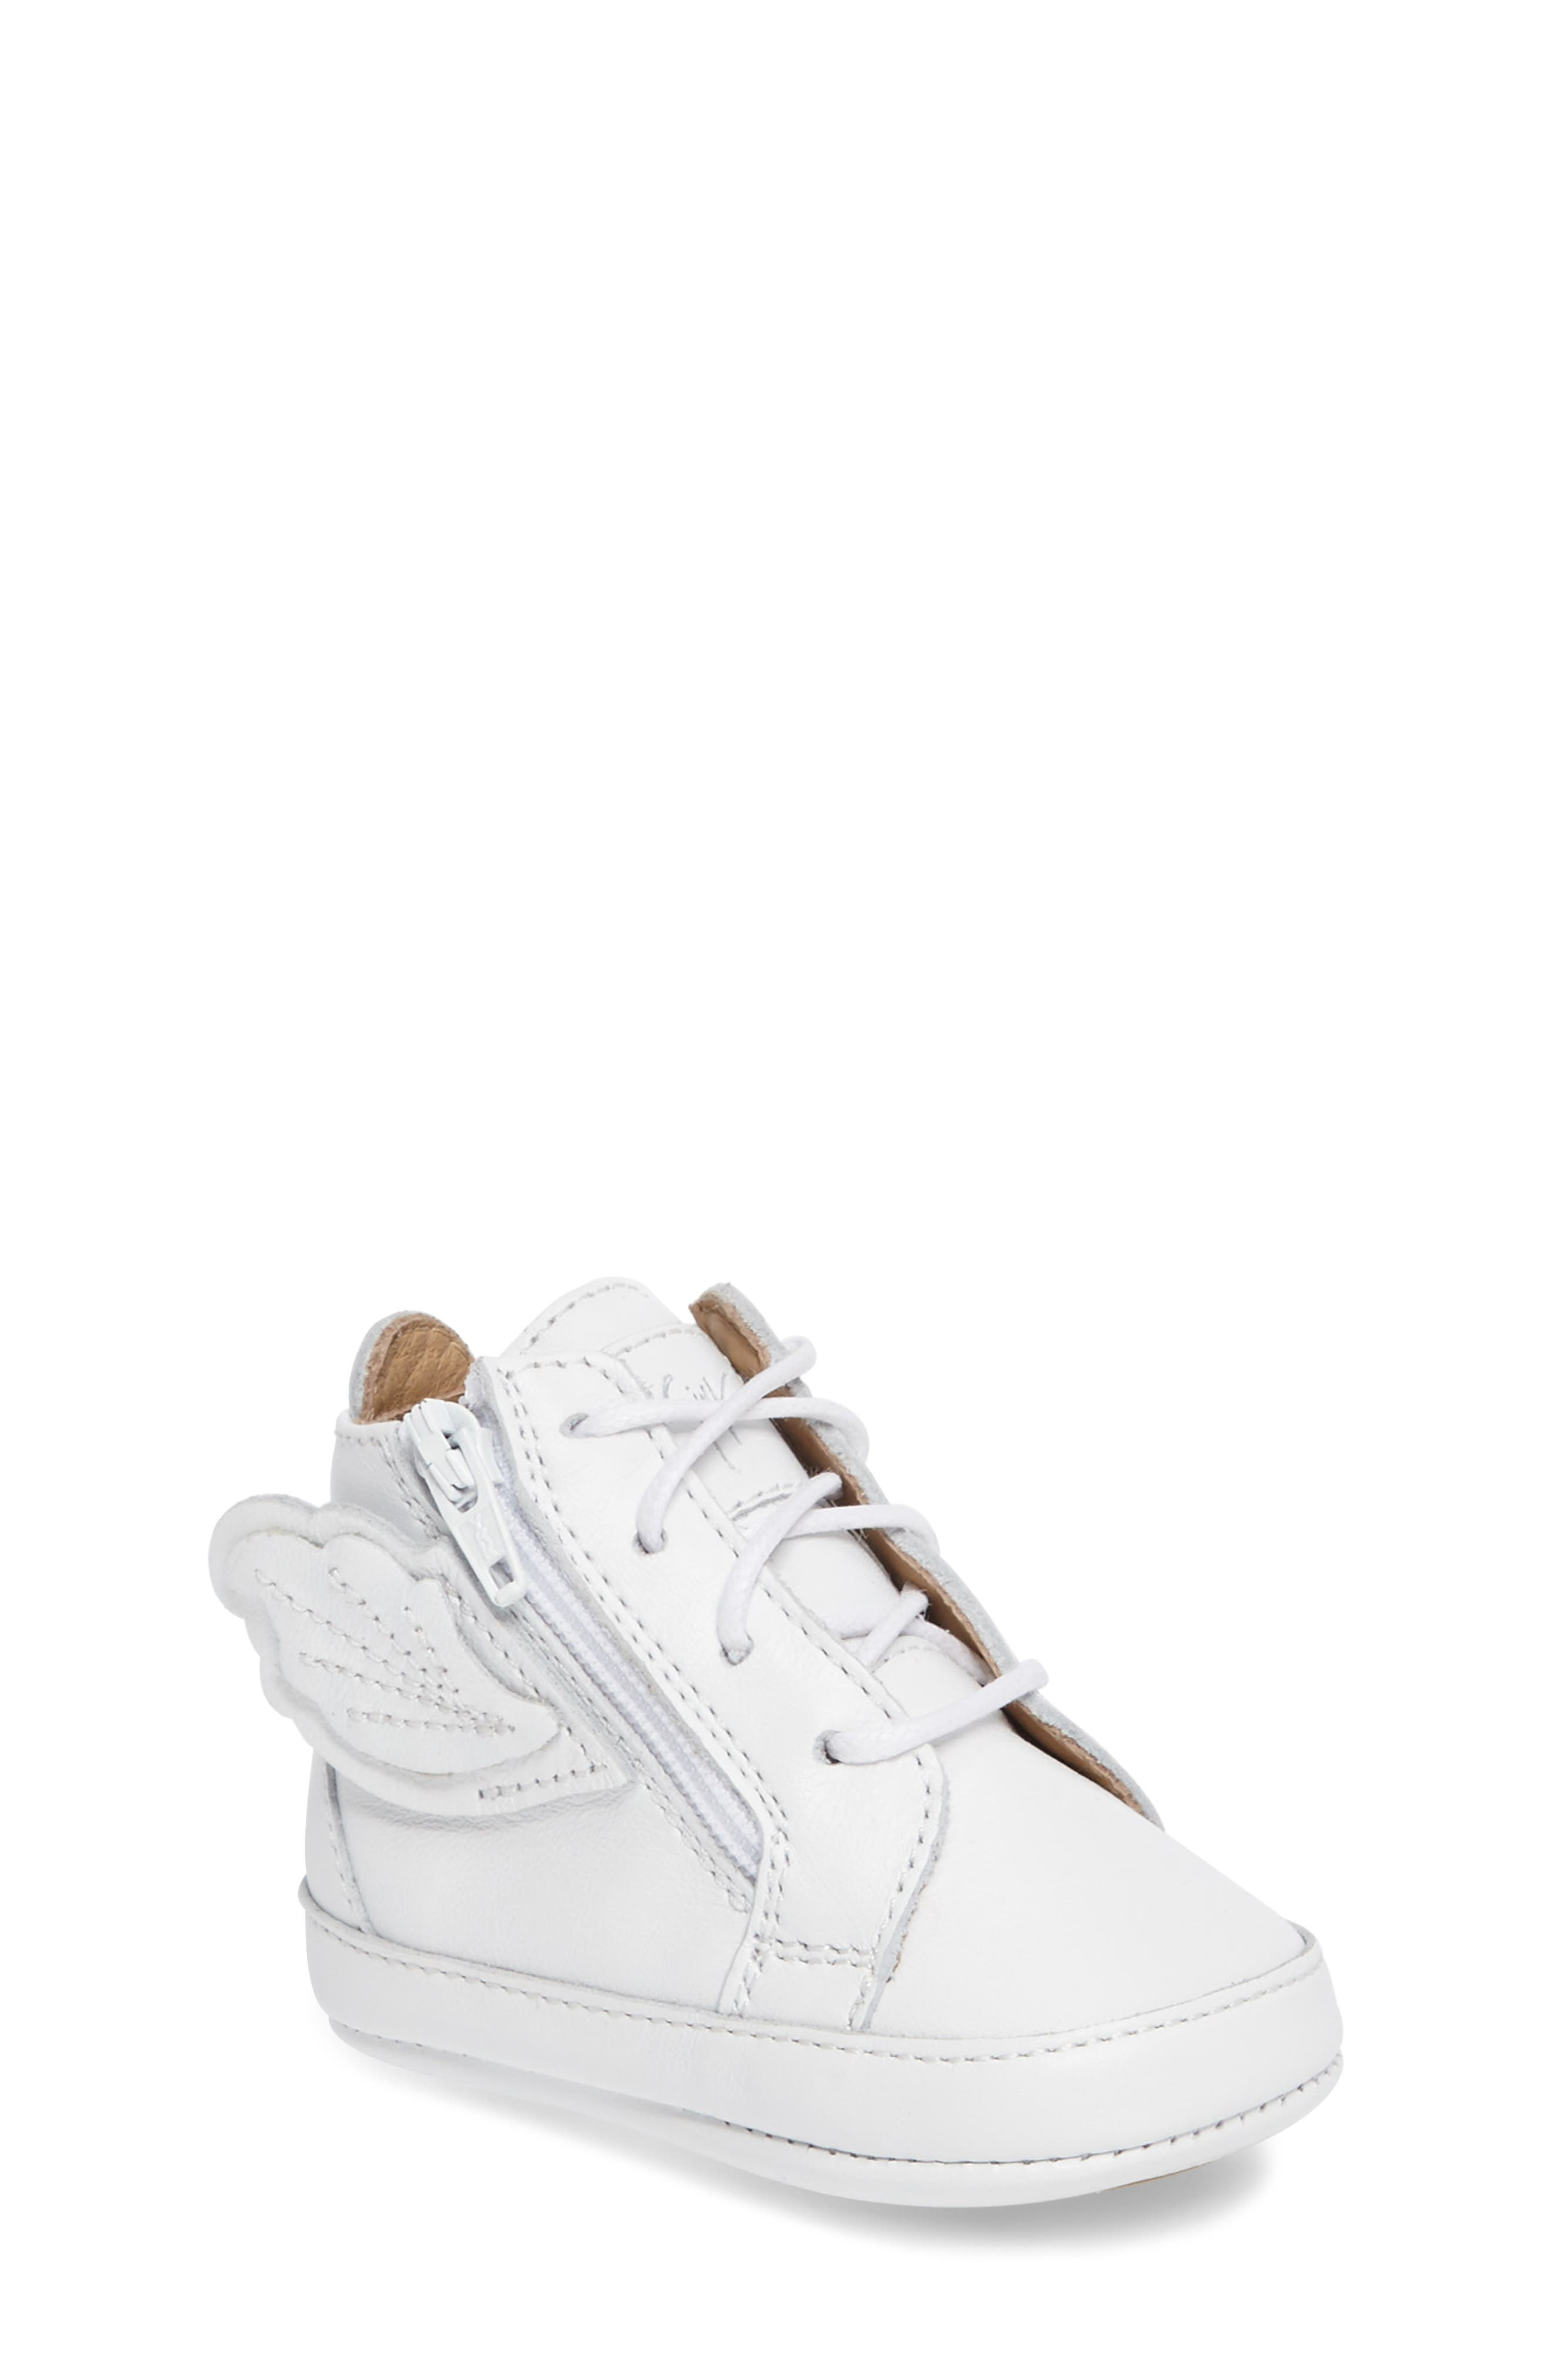 Giuseppe Zanotti Culla London High Top Crib Sneaker (Baby)